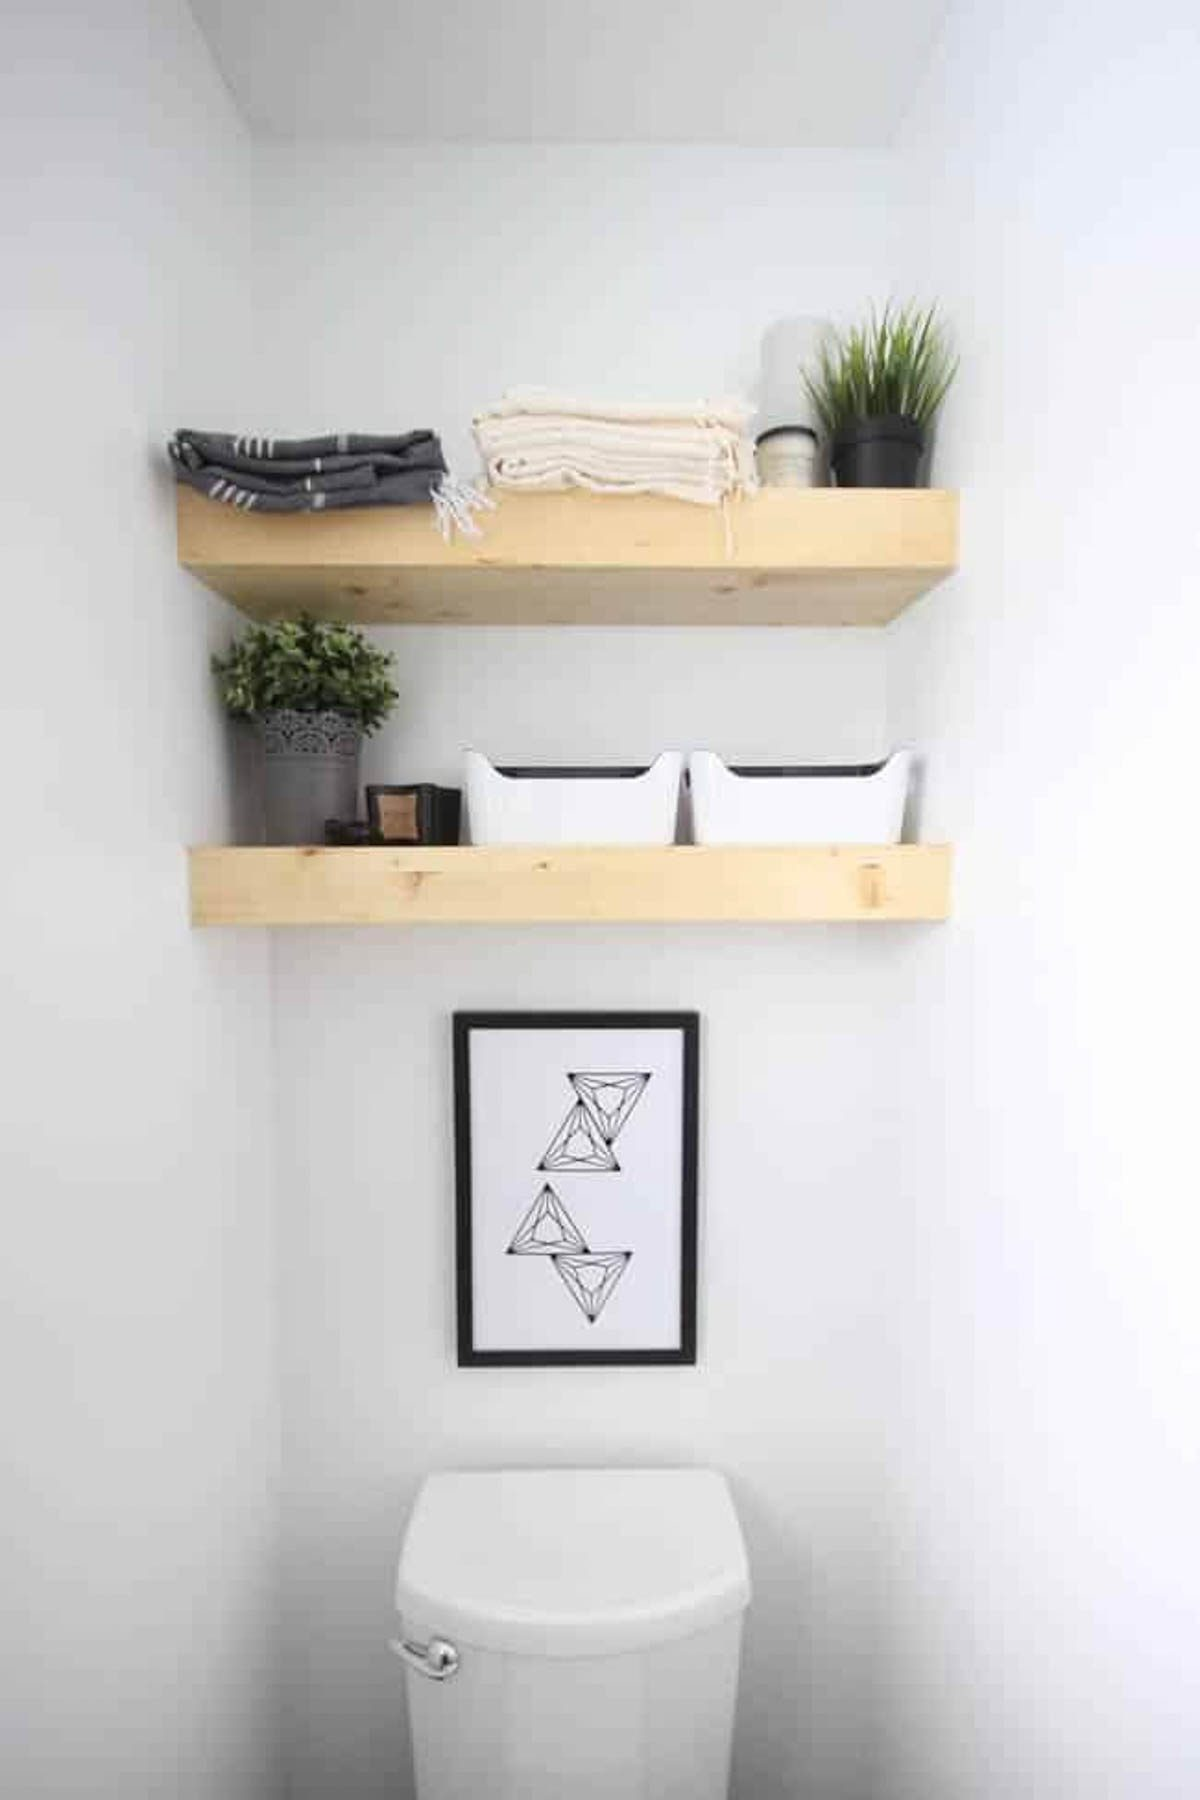 Completely decorated easy floating shelves in a bathroom